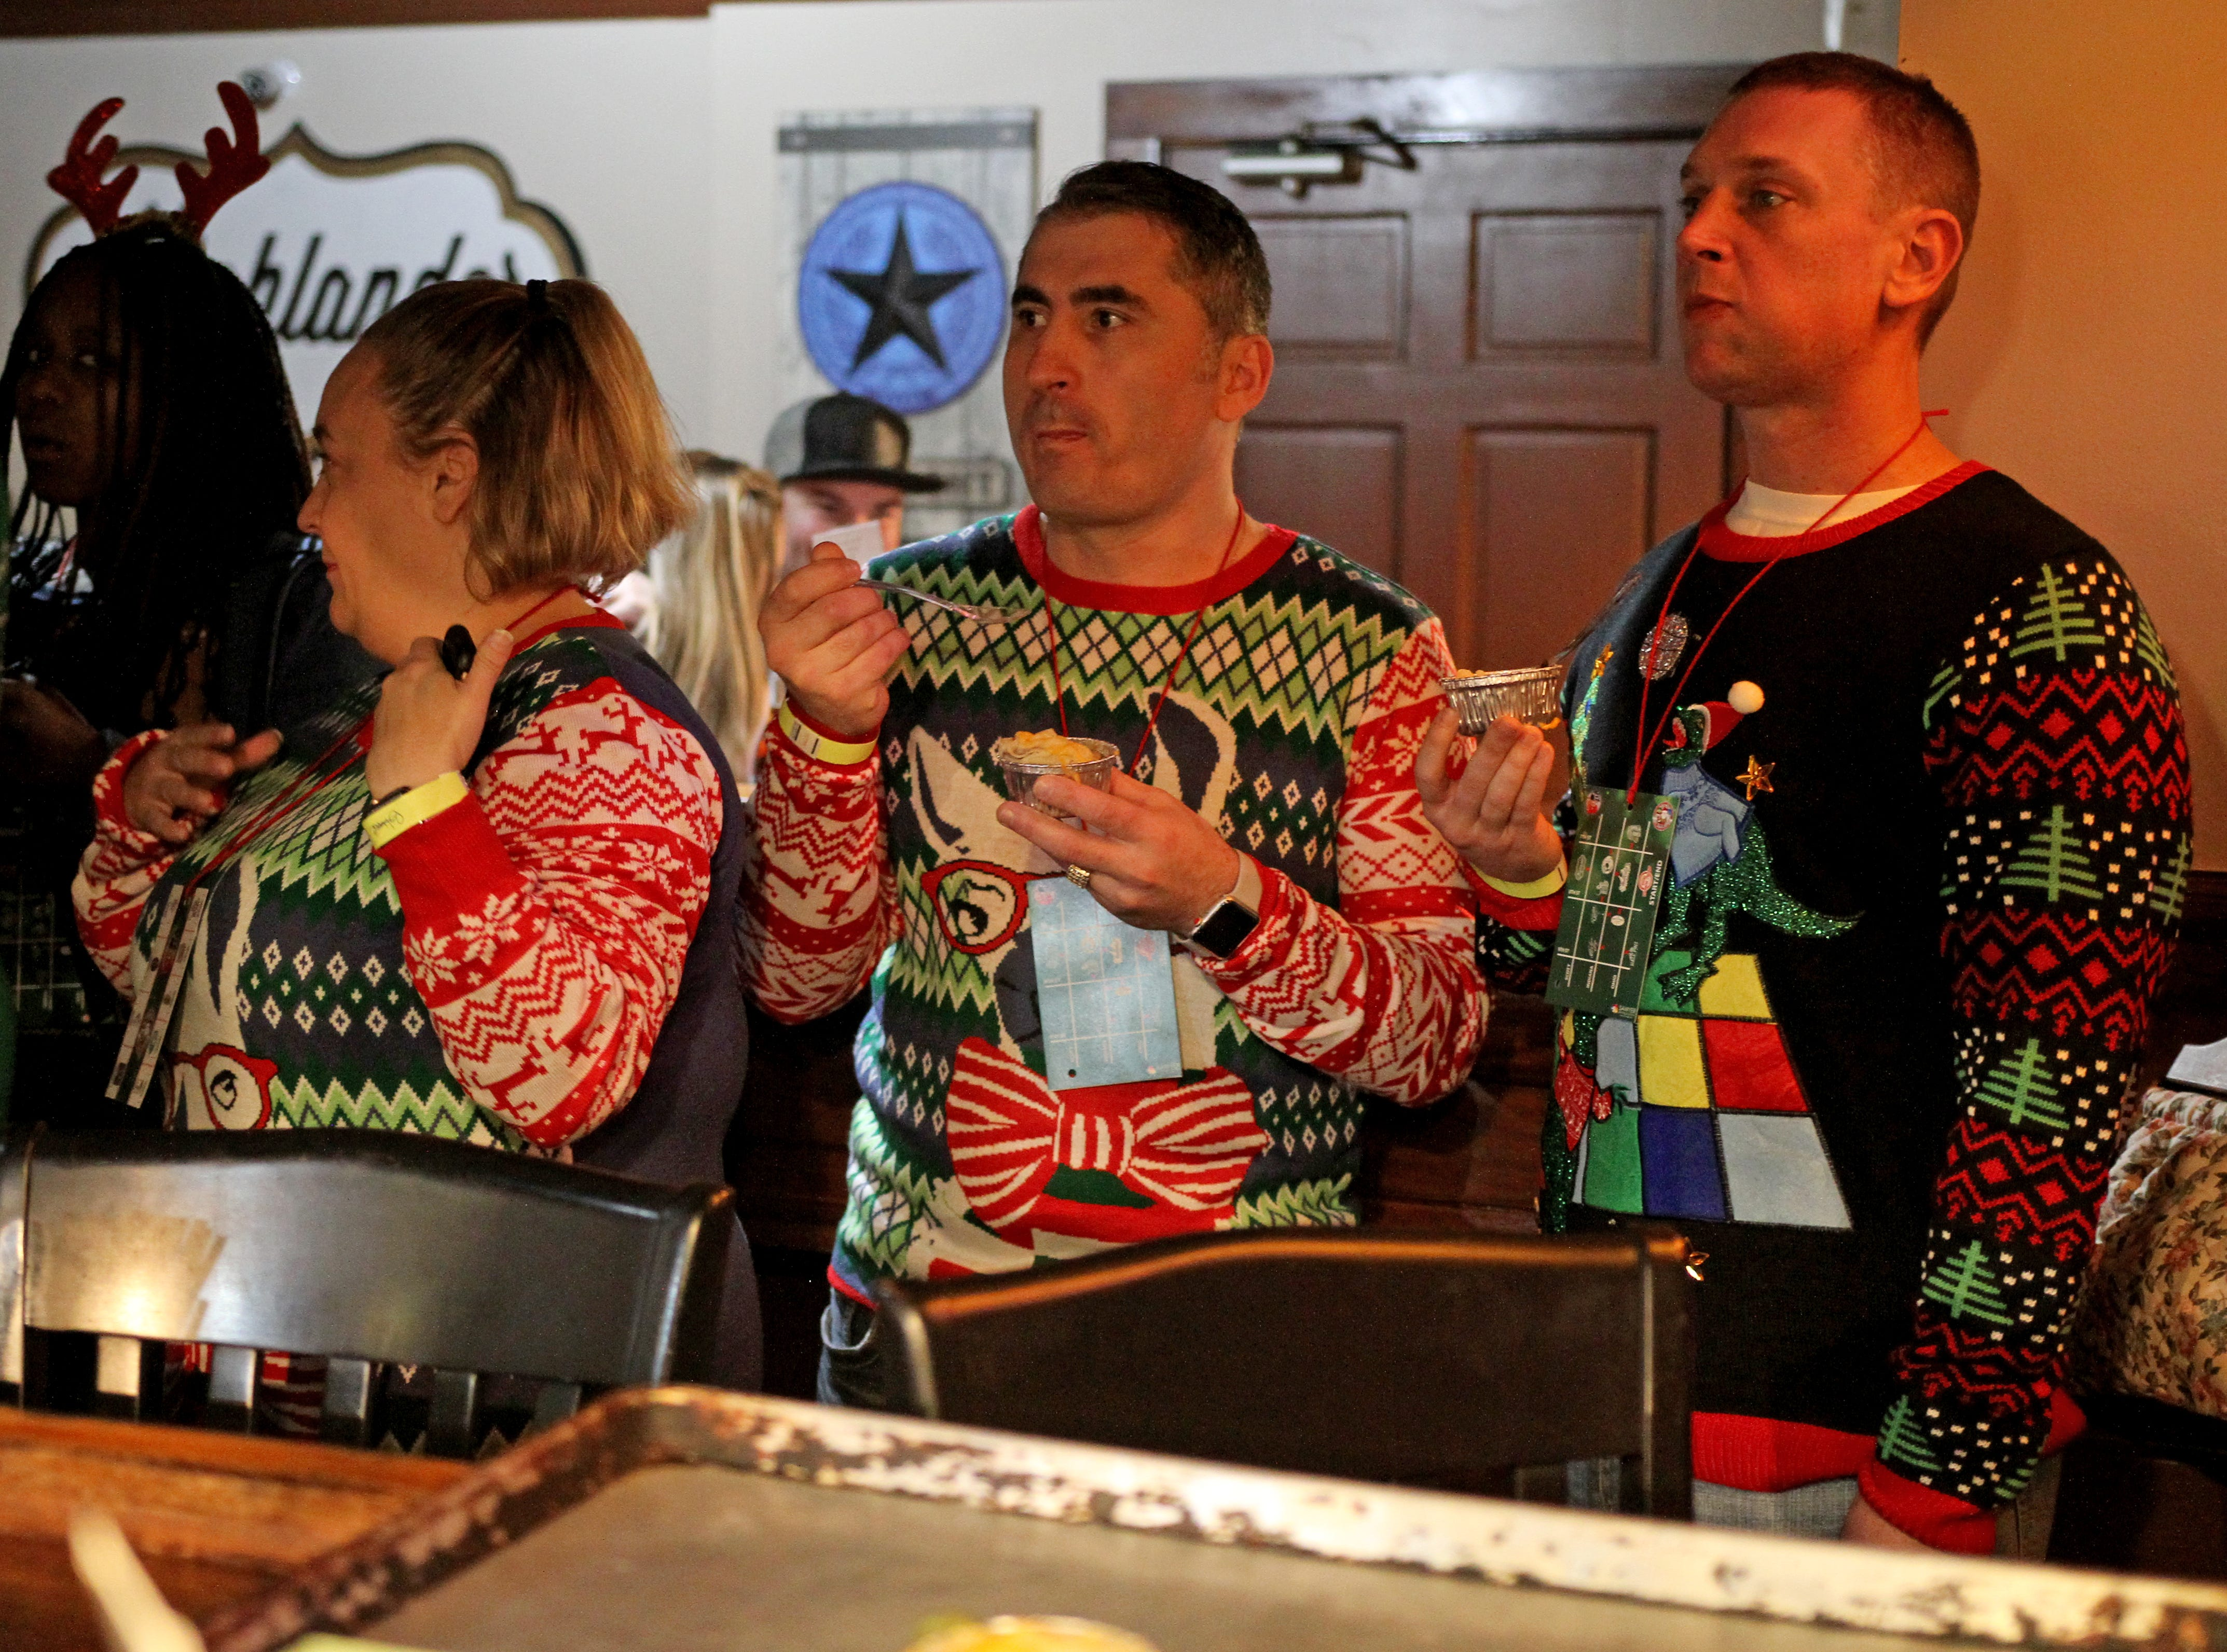 People eat while at their first stop at Highlander Public House on Rudolph's First Ugly Sweater Crawl Saturday, Dec. 1, 2018, in Downtown Wichita Falls.